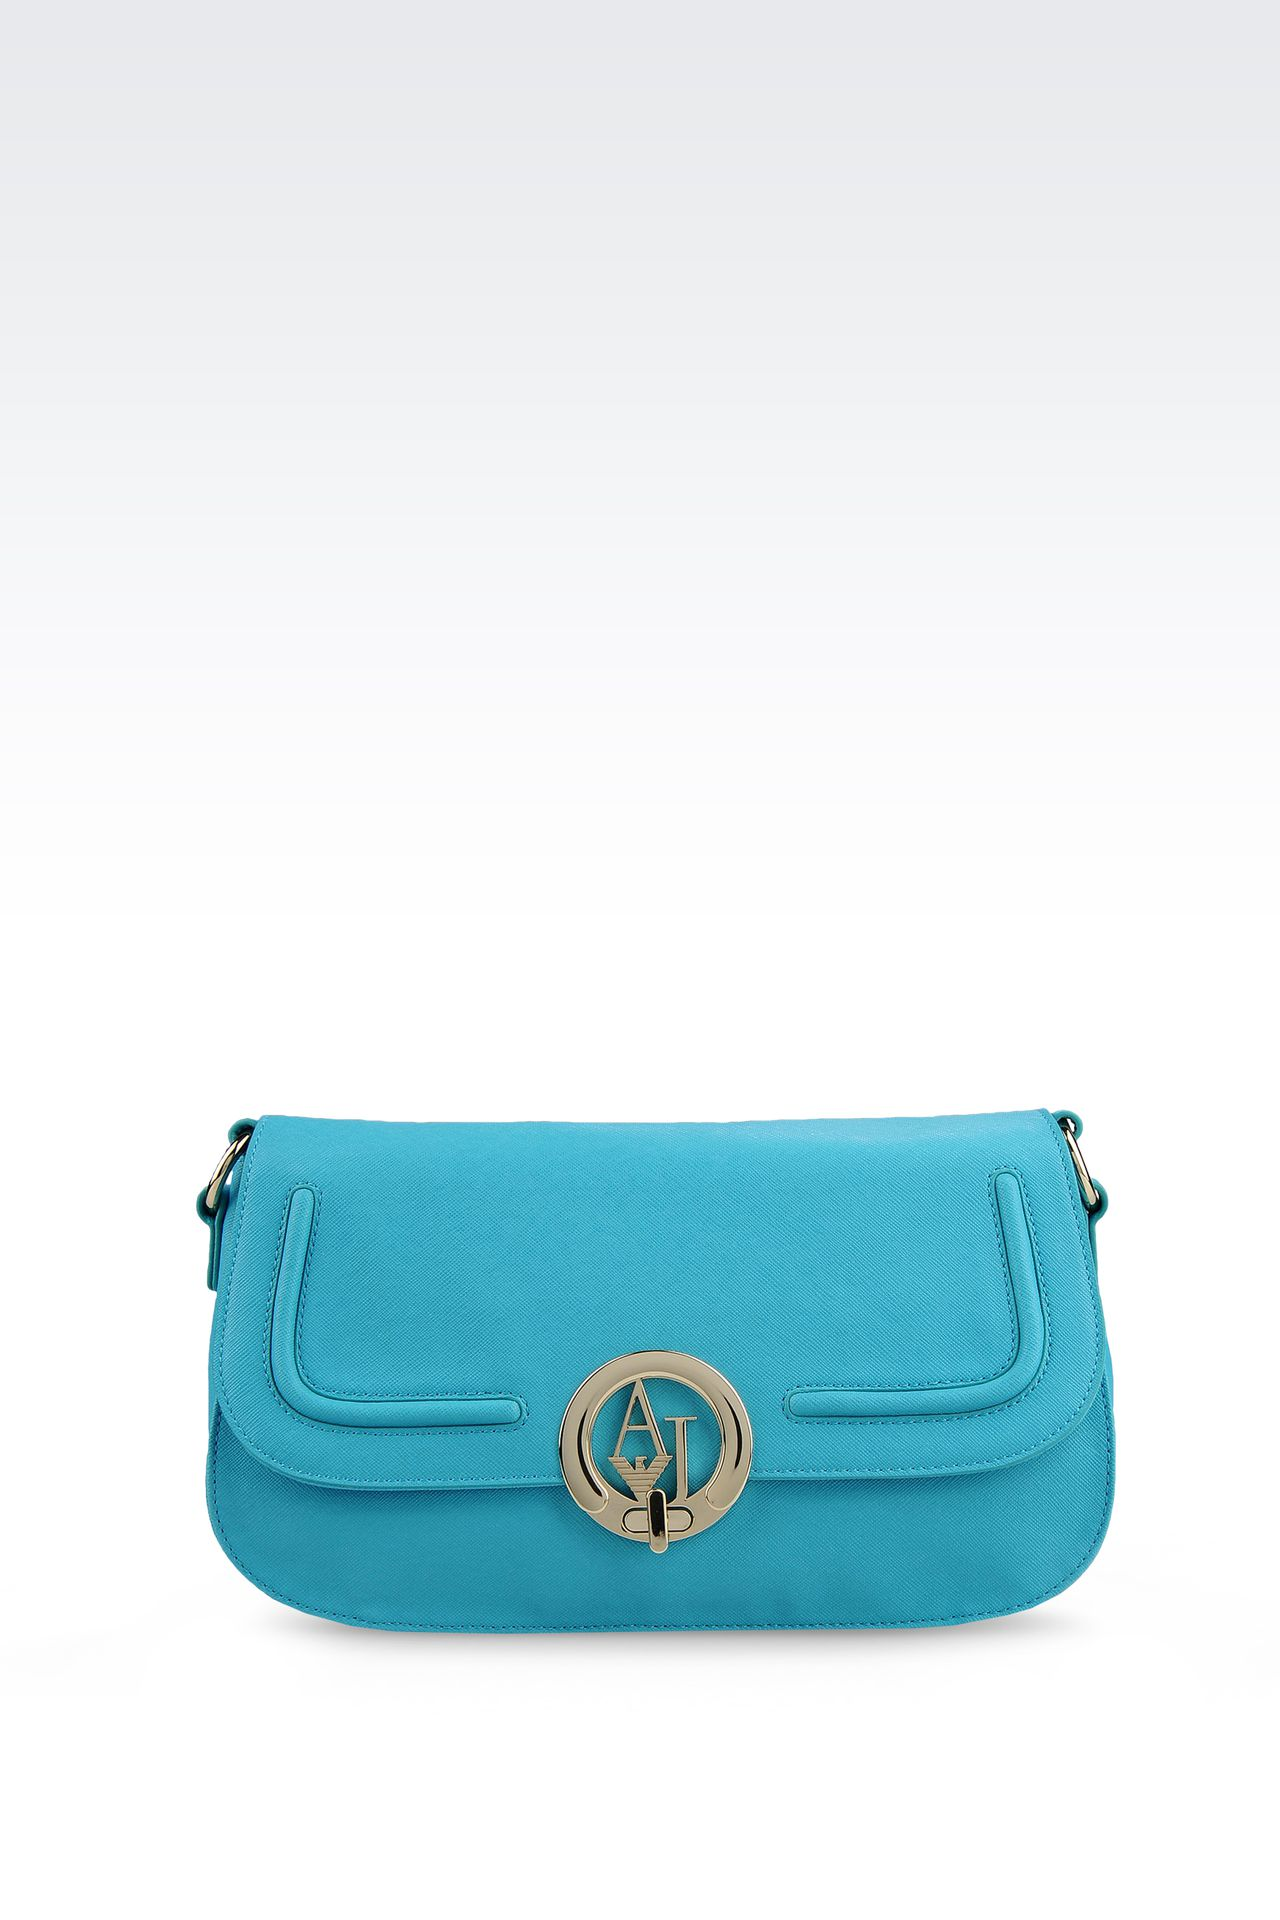 CROSS BODY IN ECO SAFFIANO WITH LOGO : Messenger bags Women by Armani - 0